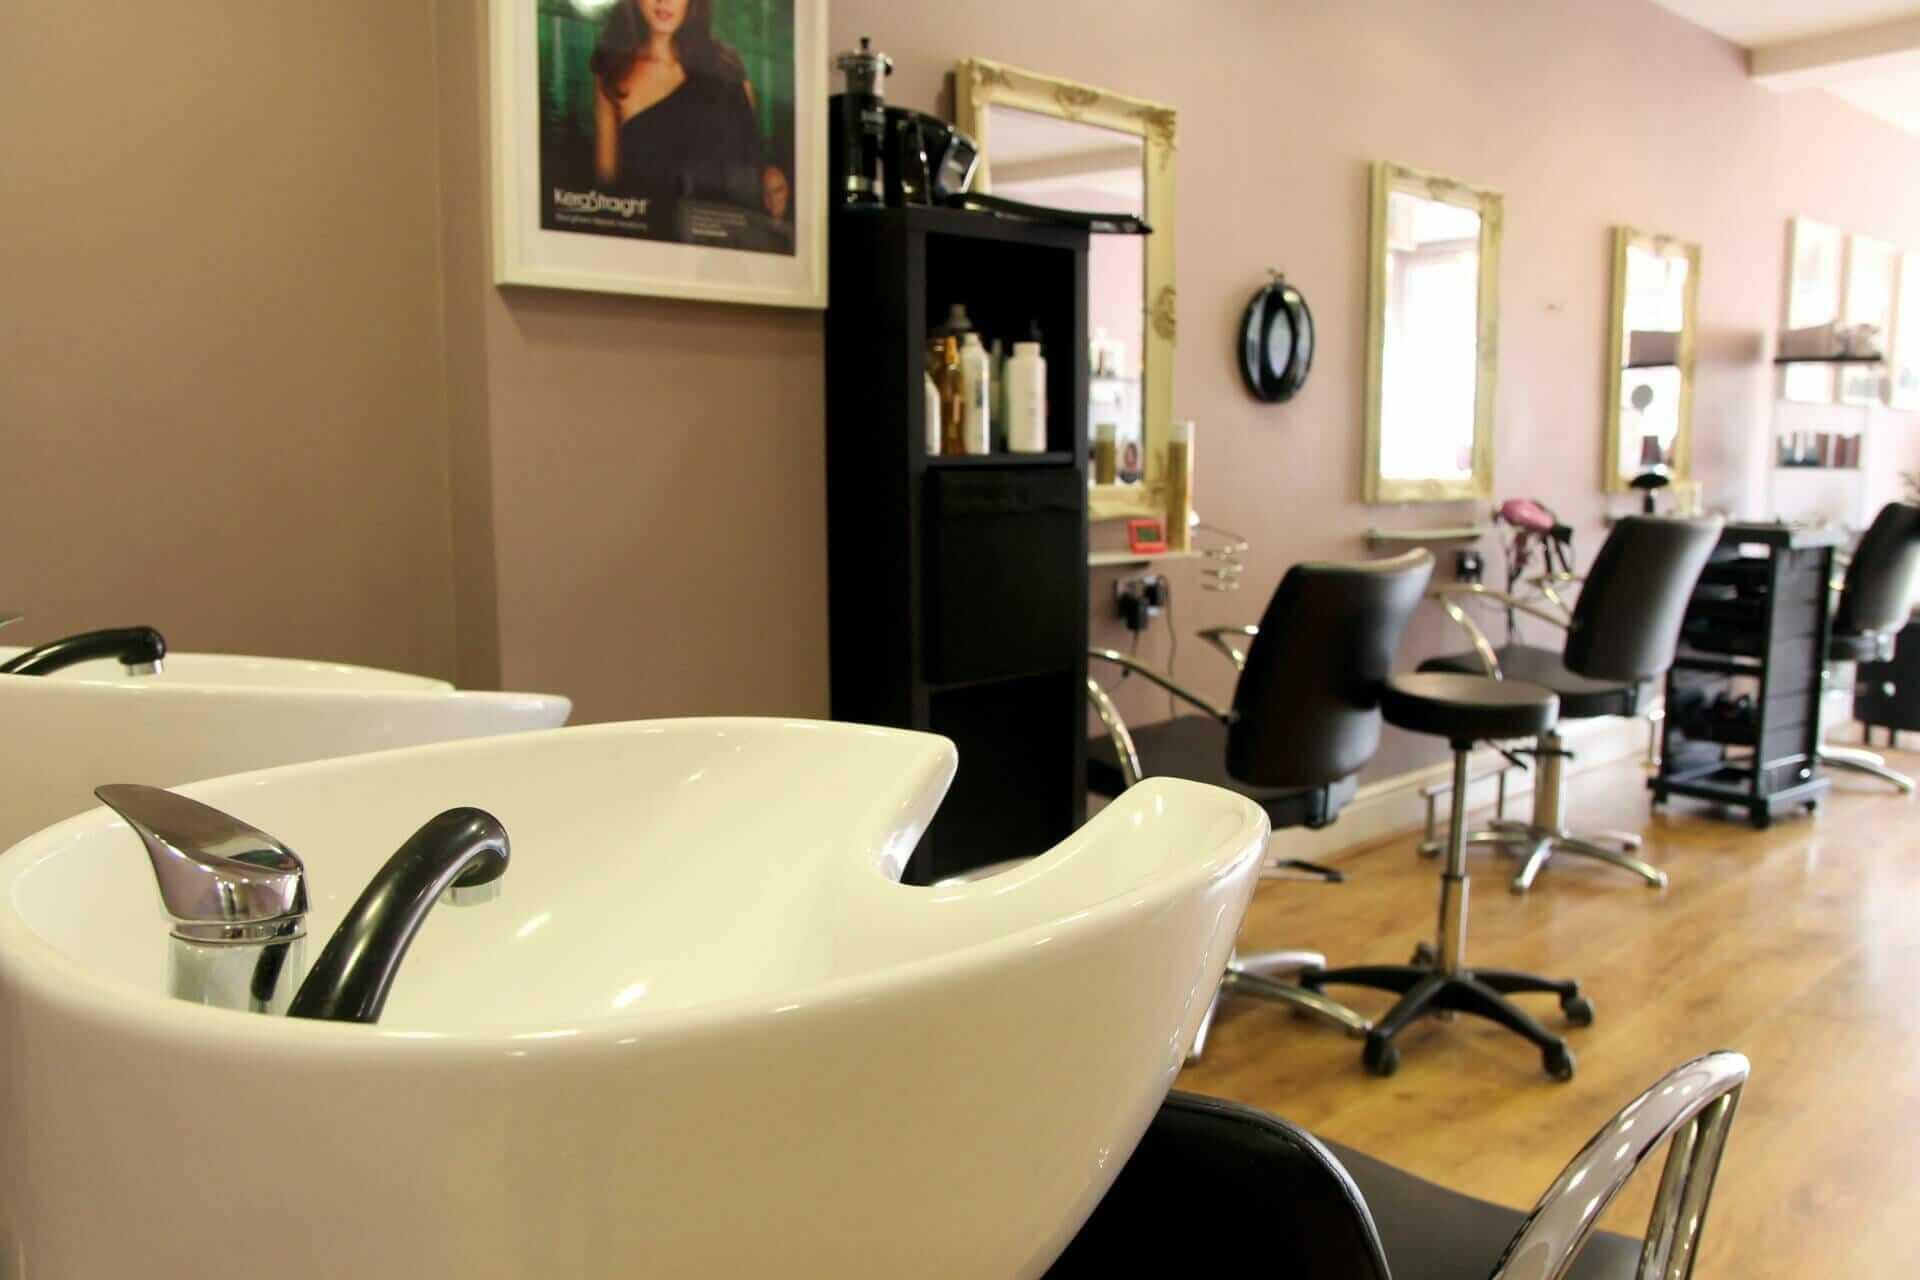 internal-view-of-serenity-beauty-salon